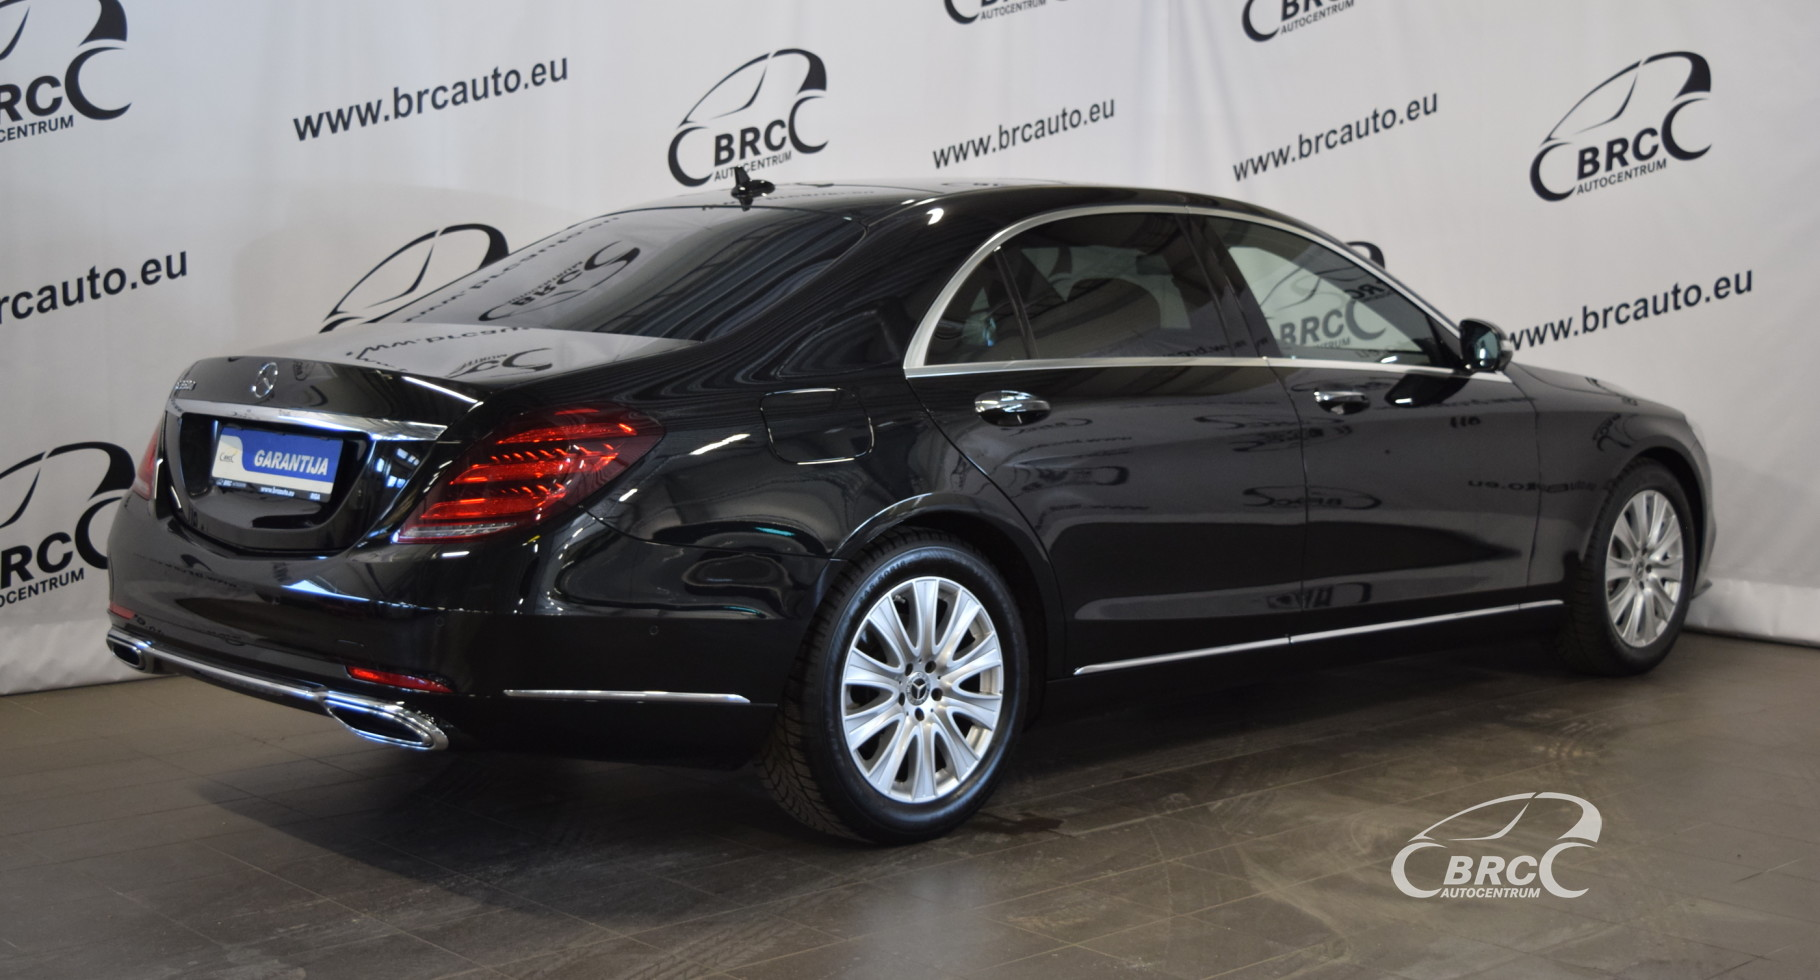 Mercedes-Benz S 350 L Facelift model